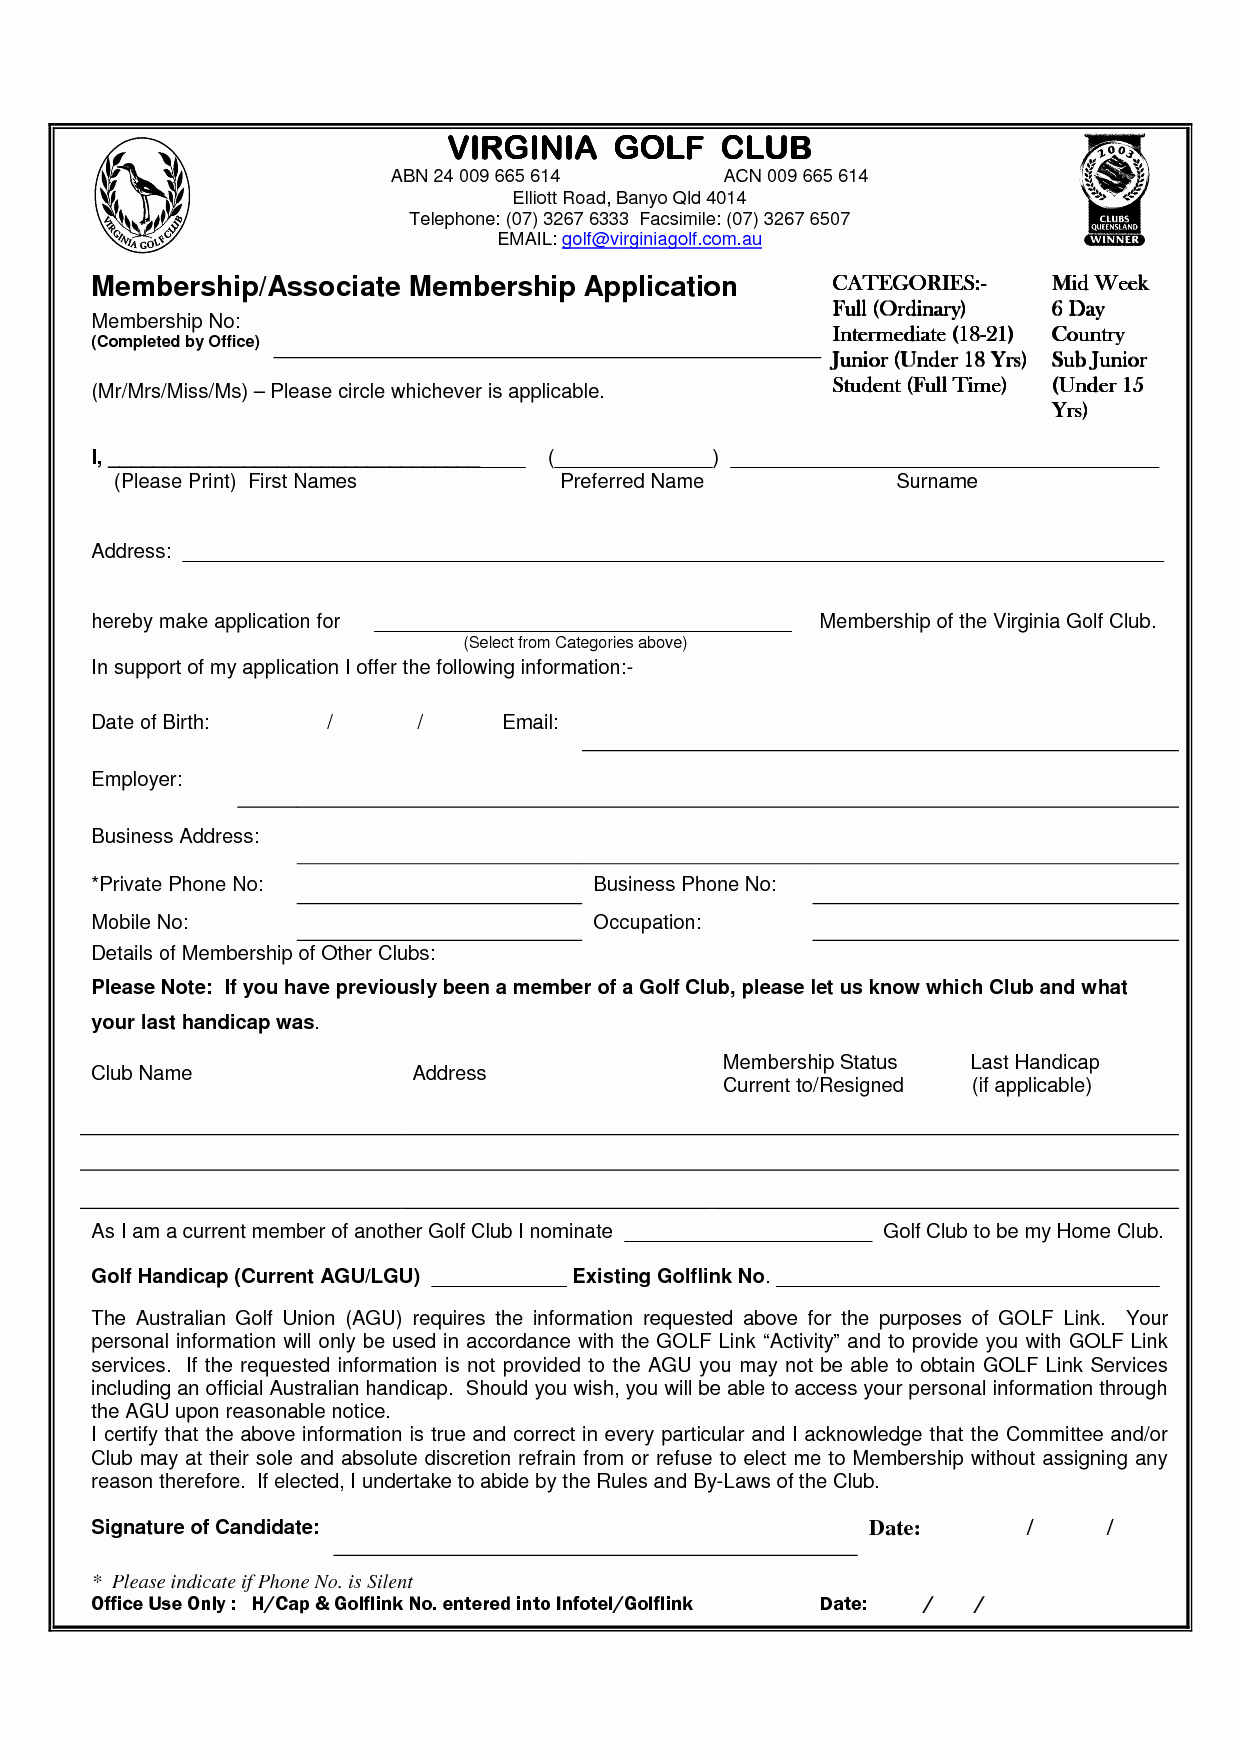 29 images of motorcycle club application form template 9208